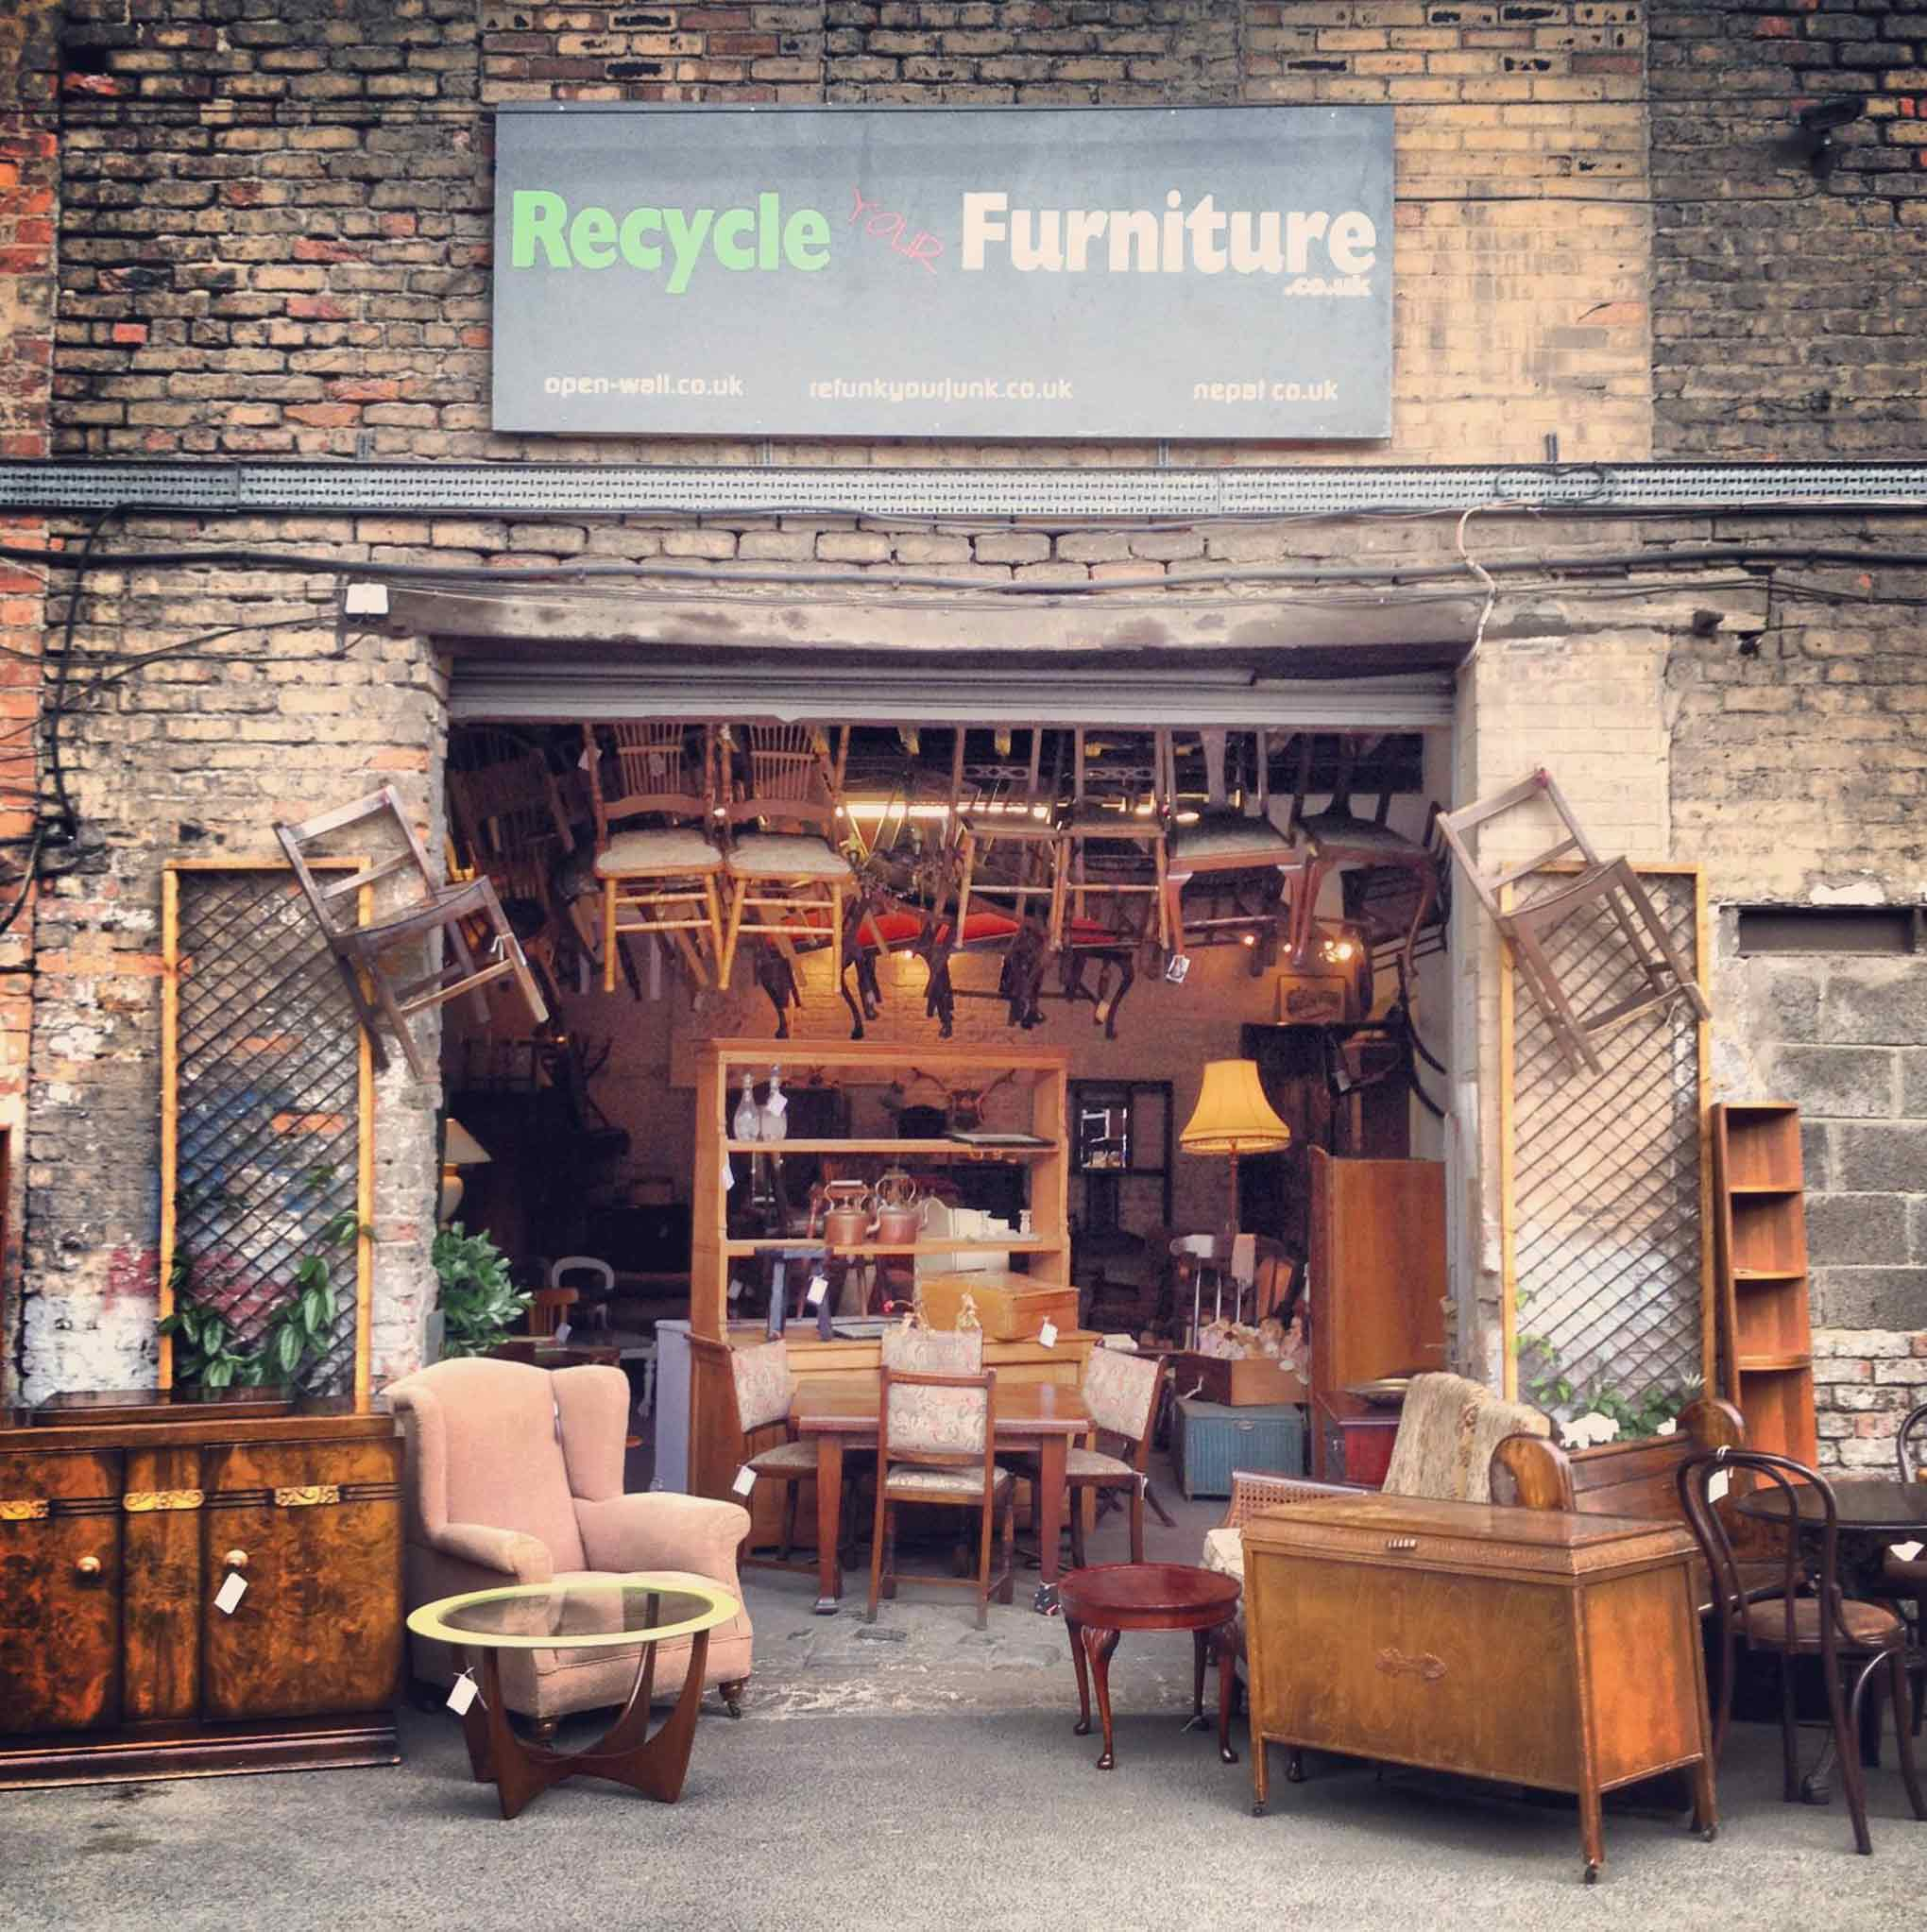 Recycle Furniture Recycle Your Furniture Vintage Antique Furniture Newcastle Ne1 2pz